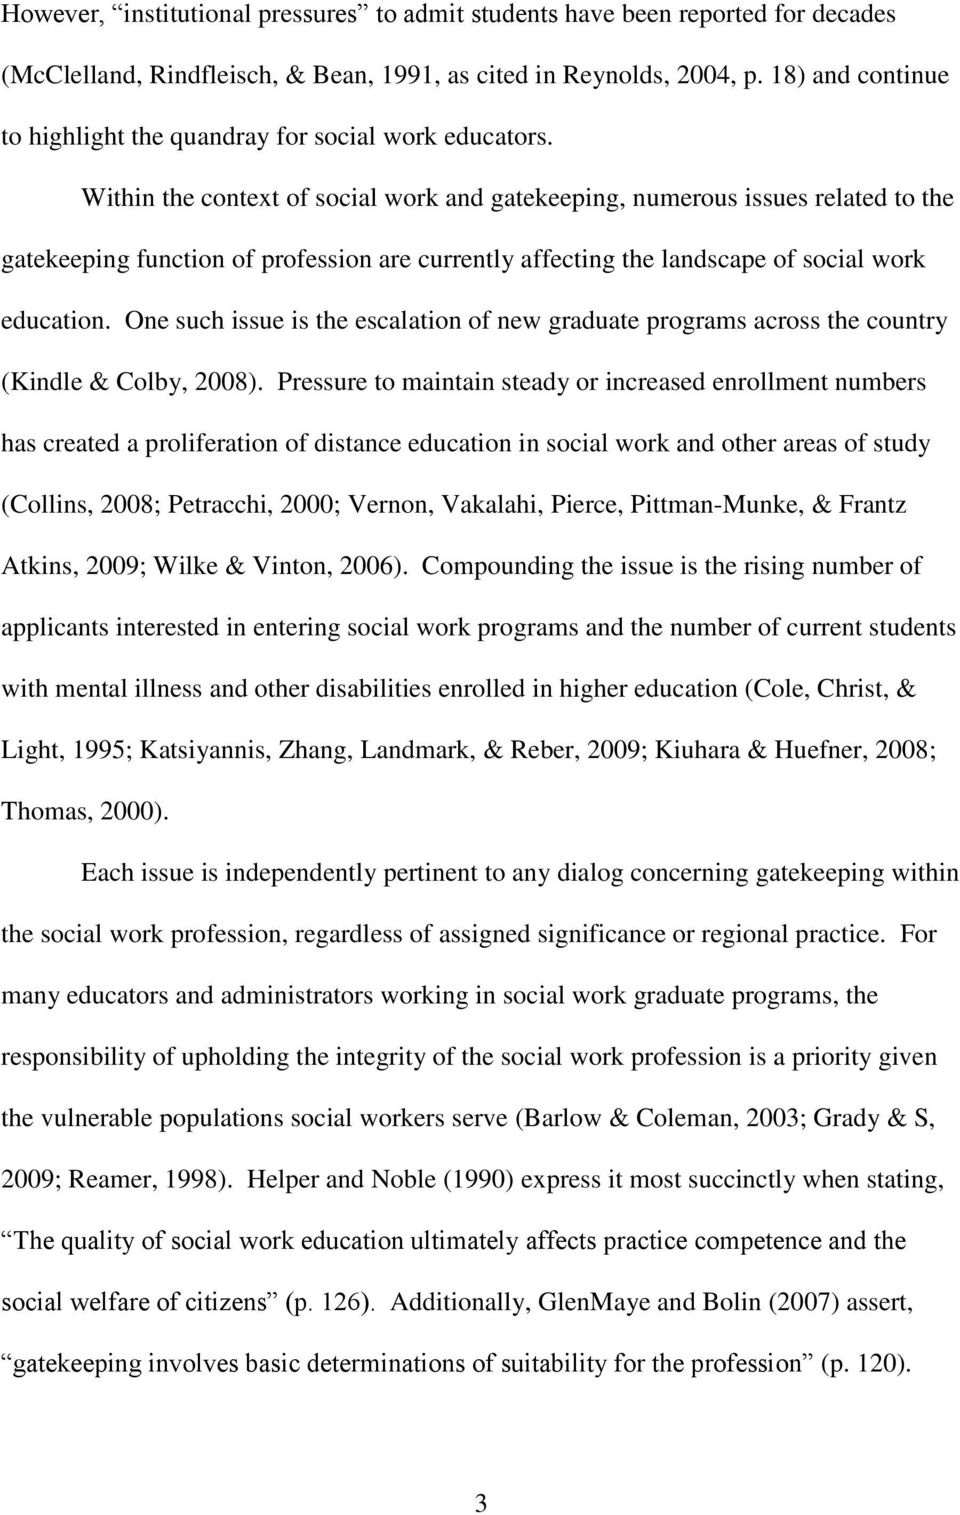 Within the context of social work and gatekeeping, numerous issues related to the gatekeeping function of profession are currently affecting the landscape of social work education.